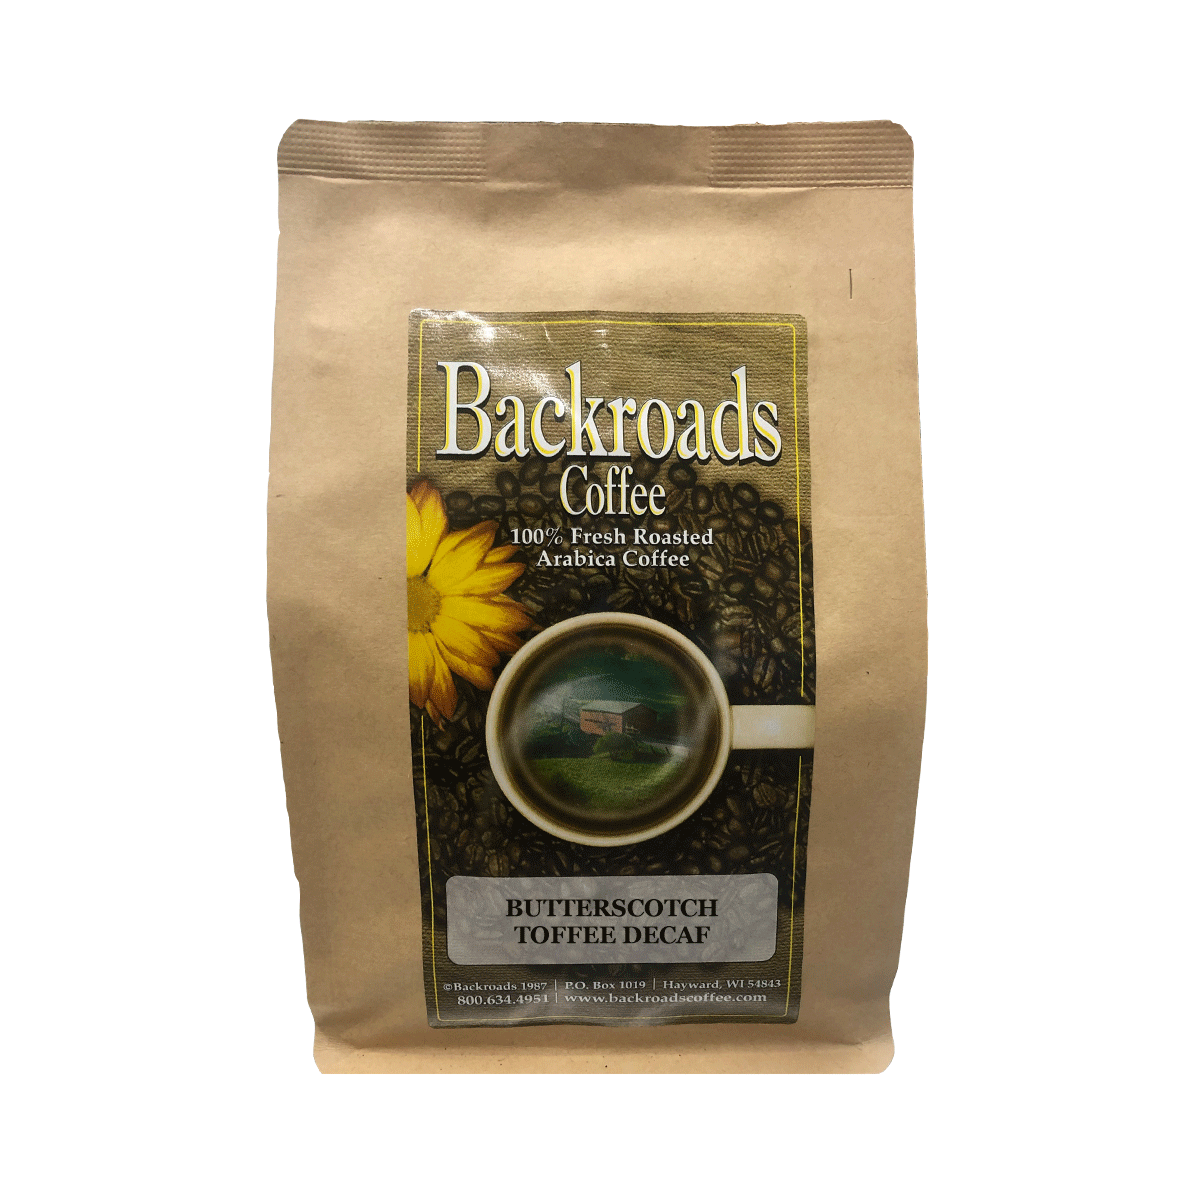 Butterscotch Toffee Decaf 8 oz Coffee